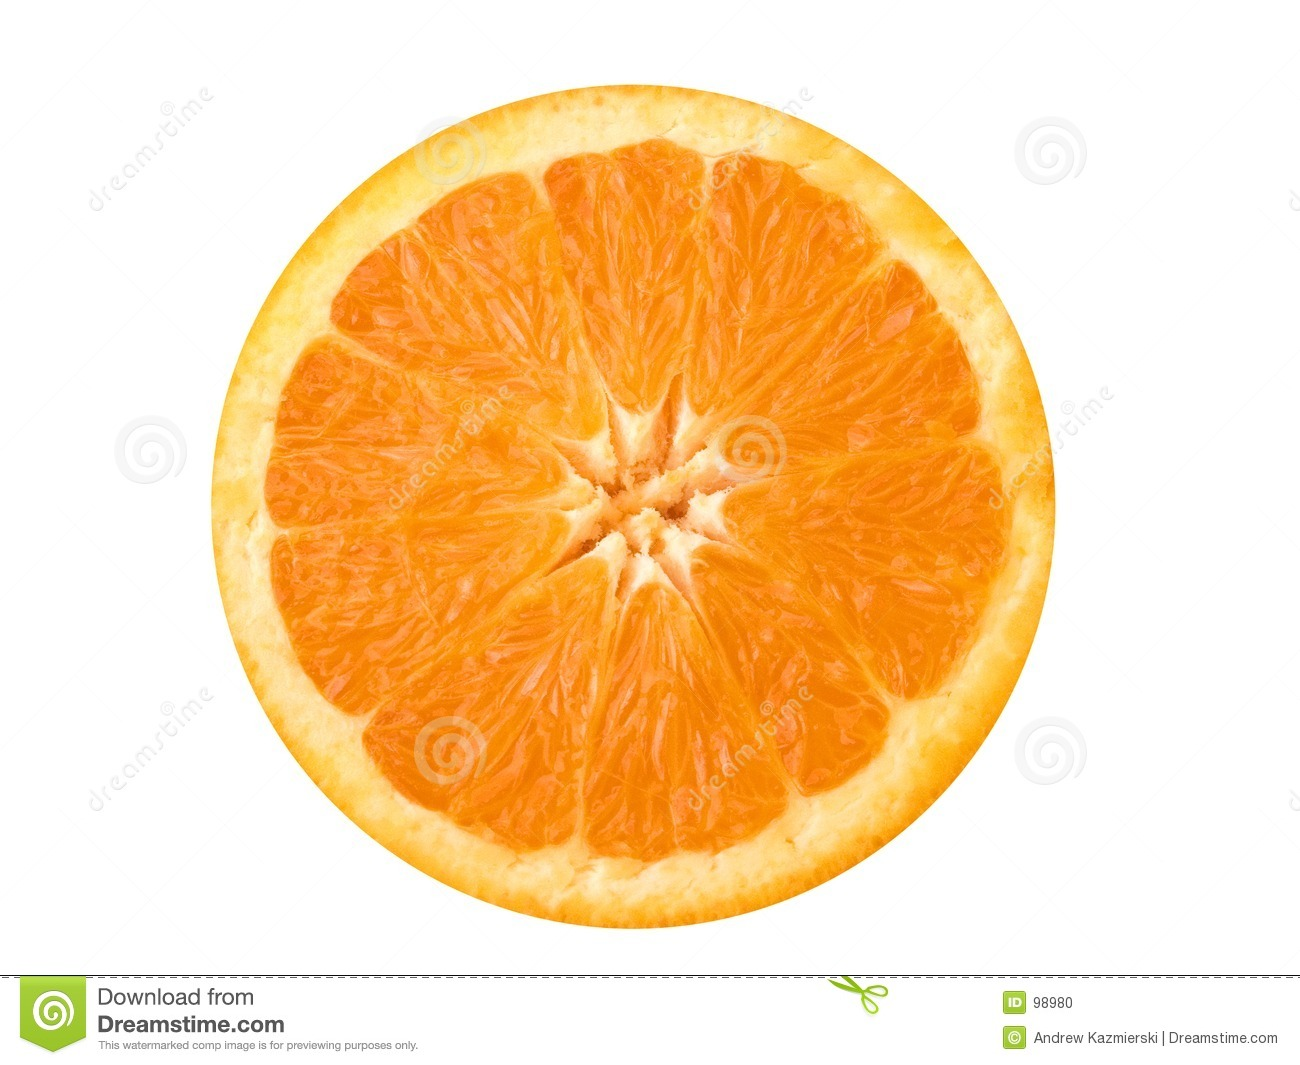 This is a close-up of an orange cut in half.